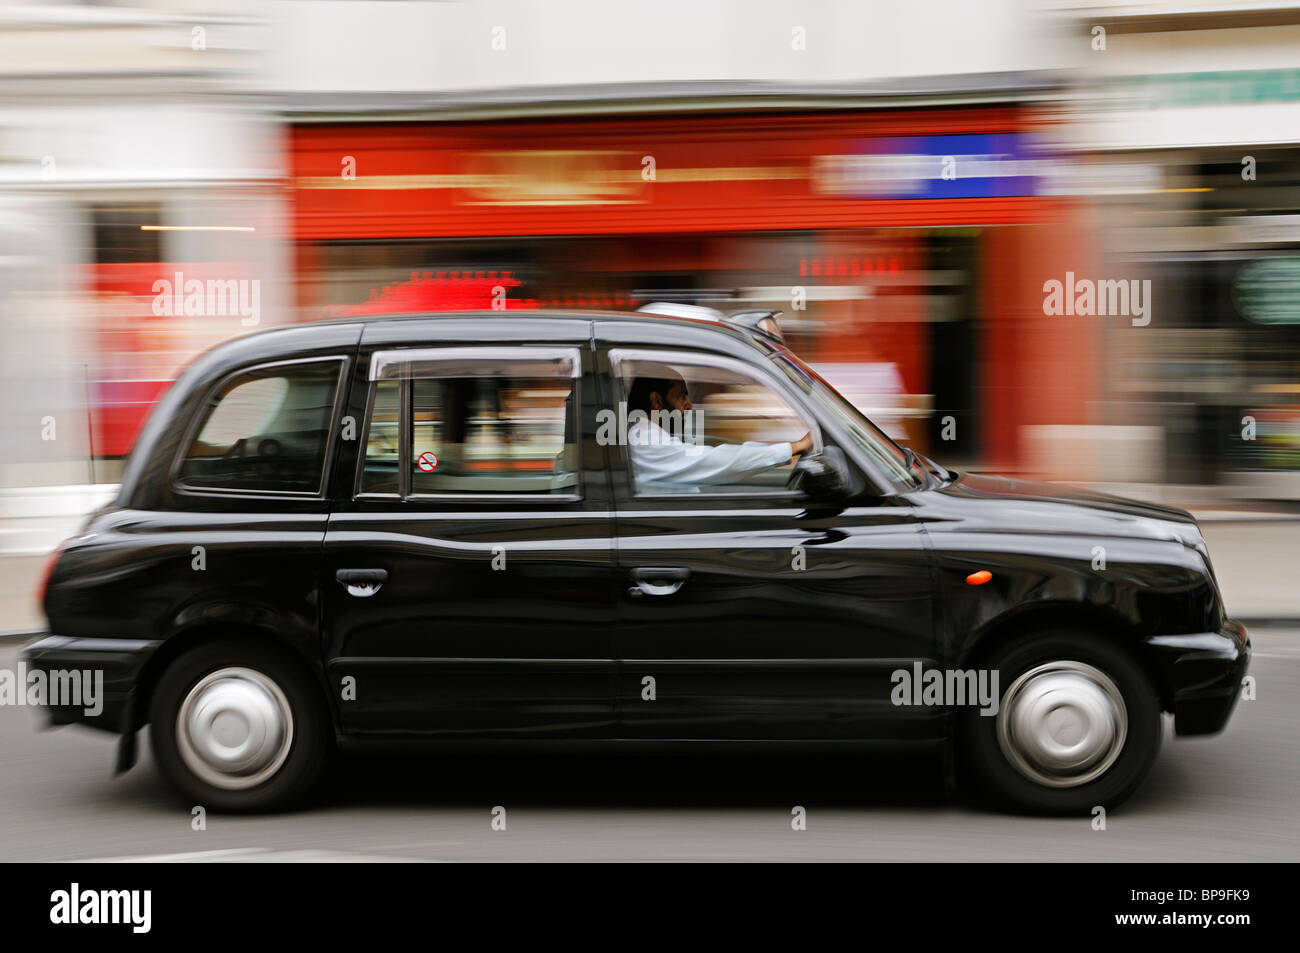 London Taxi - Stock Image